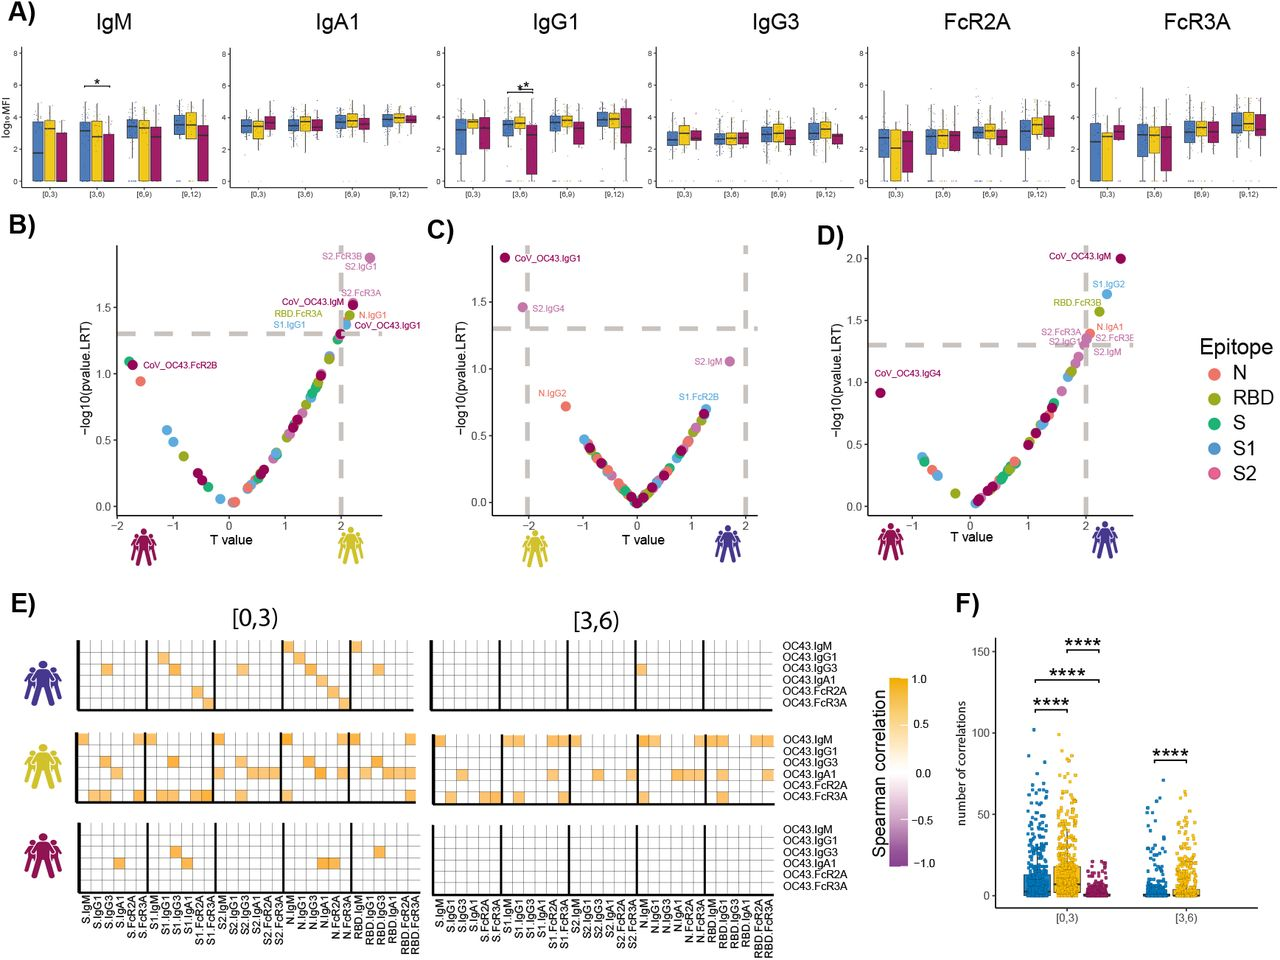 The temporal evolution of the human OC43 specific humoral immune response. (A) The whisker bar graphs show the distribution of human OC43 receptor binding domain (RBD)-specific antibody titers and OC43-specific antibody mediated Fc-receptor binding profiles across moderate, severe, and non-survivor COVID-19 groups over the study time course. The solid black line represents the median and box boundary (upper and bottom). (B-D) The volcano plots show the pairwise comparisons across the three COVID-19 severity groups, (A) individuals that passed away within 28 days (deceased) vs. severe survivors; (B) subjects who experienced moderate disease vs. severe survivors; (C) subjects who ultimately passed away (deceased) vs. subjects who developed moderate disease, including human OC43 RBD-specific humoral immune data. (E) The correlation heatmap shows the pairwise Spearman correlation matrices between OC43-specific and SARS-CoV-2 antibody levels across three COVID-19 severity groups (moderate, severe, and non-survivors) across the study time course. The correlation coefficients were shown only if statistically significant (adjust p -value